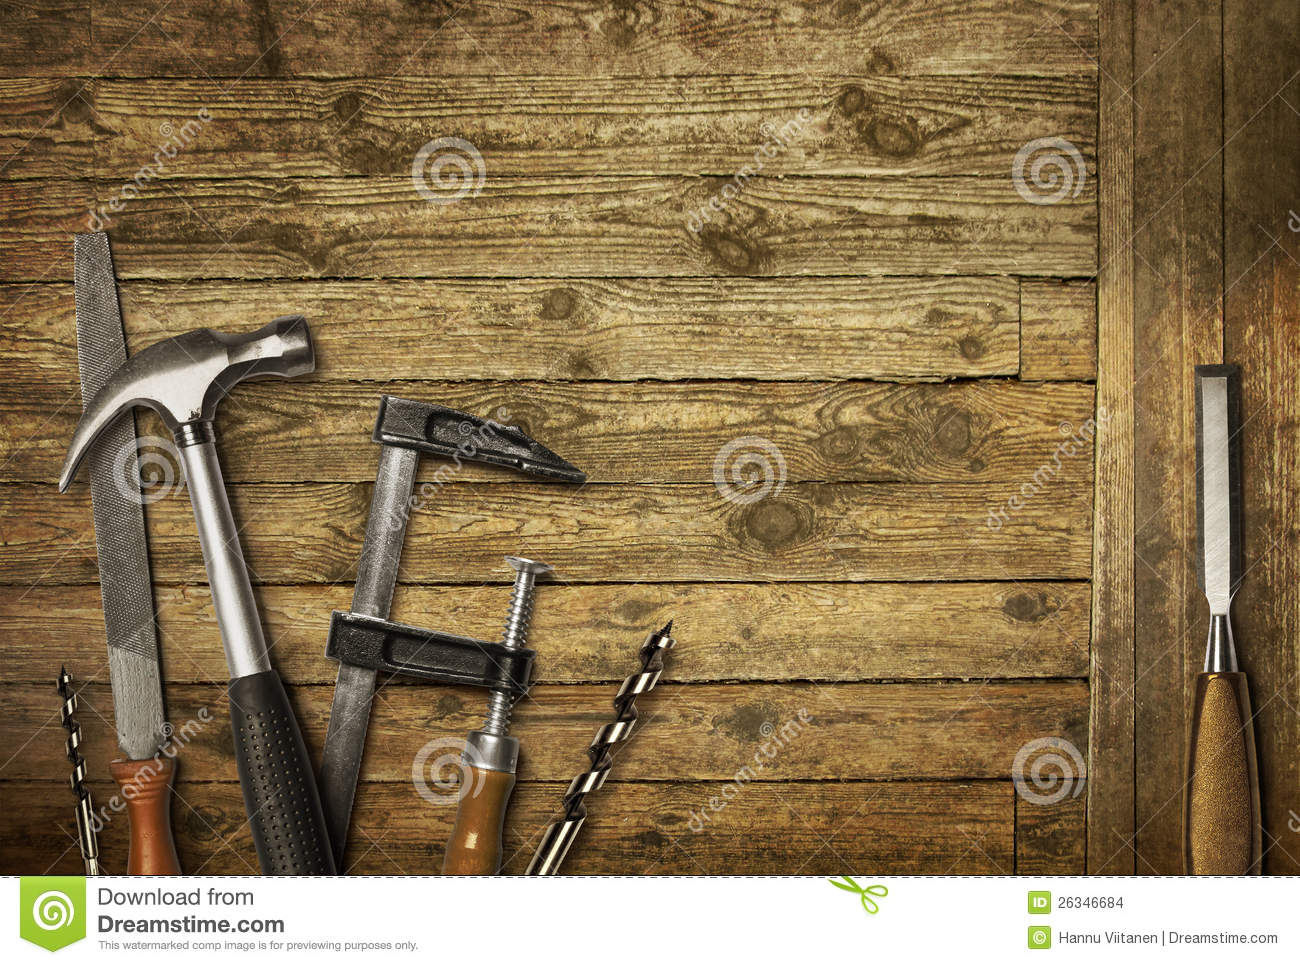 Carpentry Tools Old Wood Stock Photo Image Of Rough 26346684